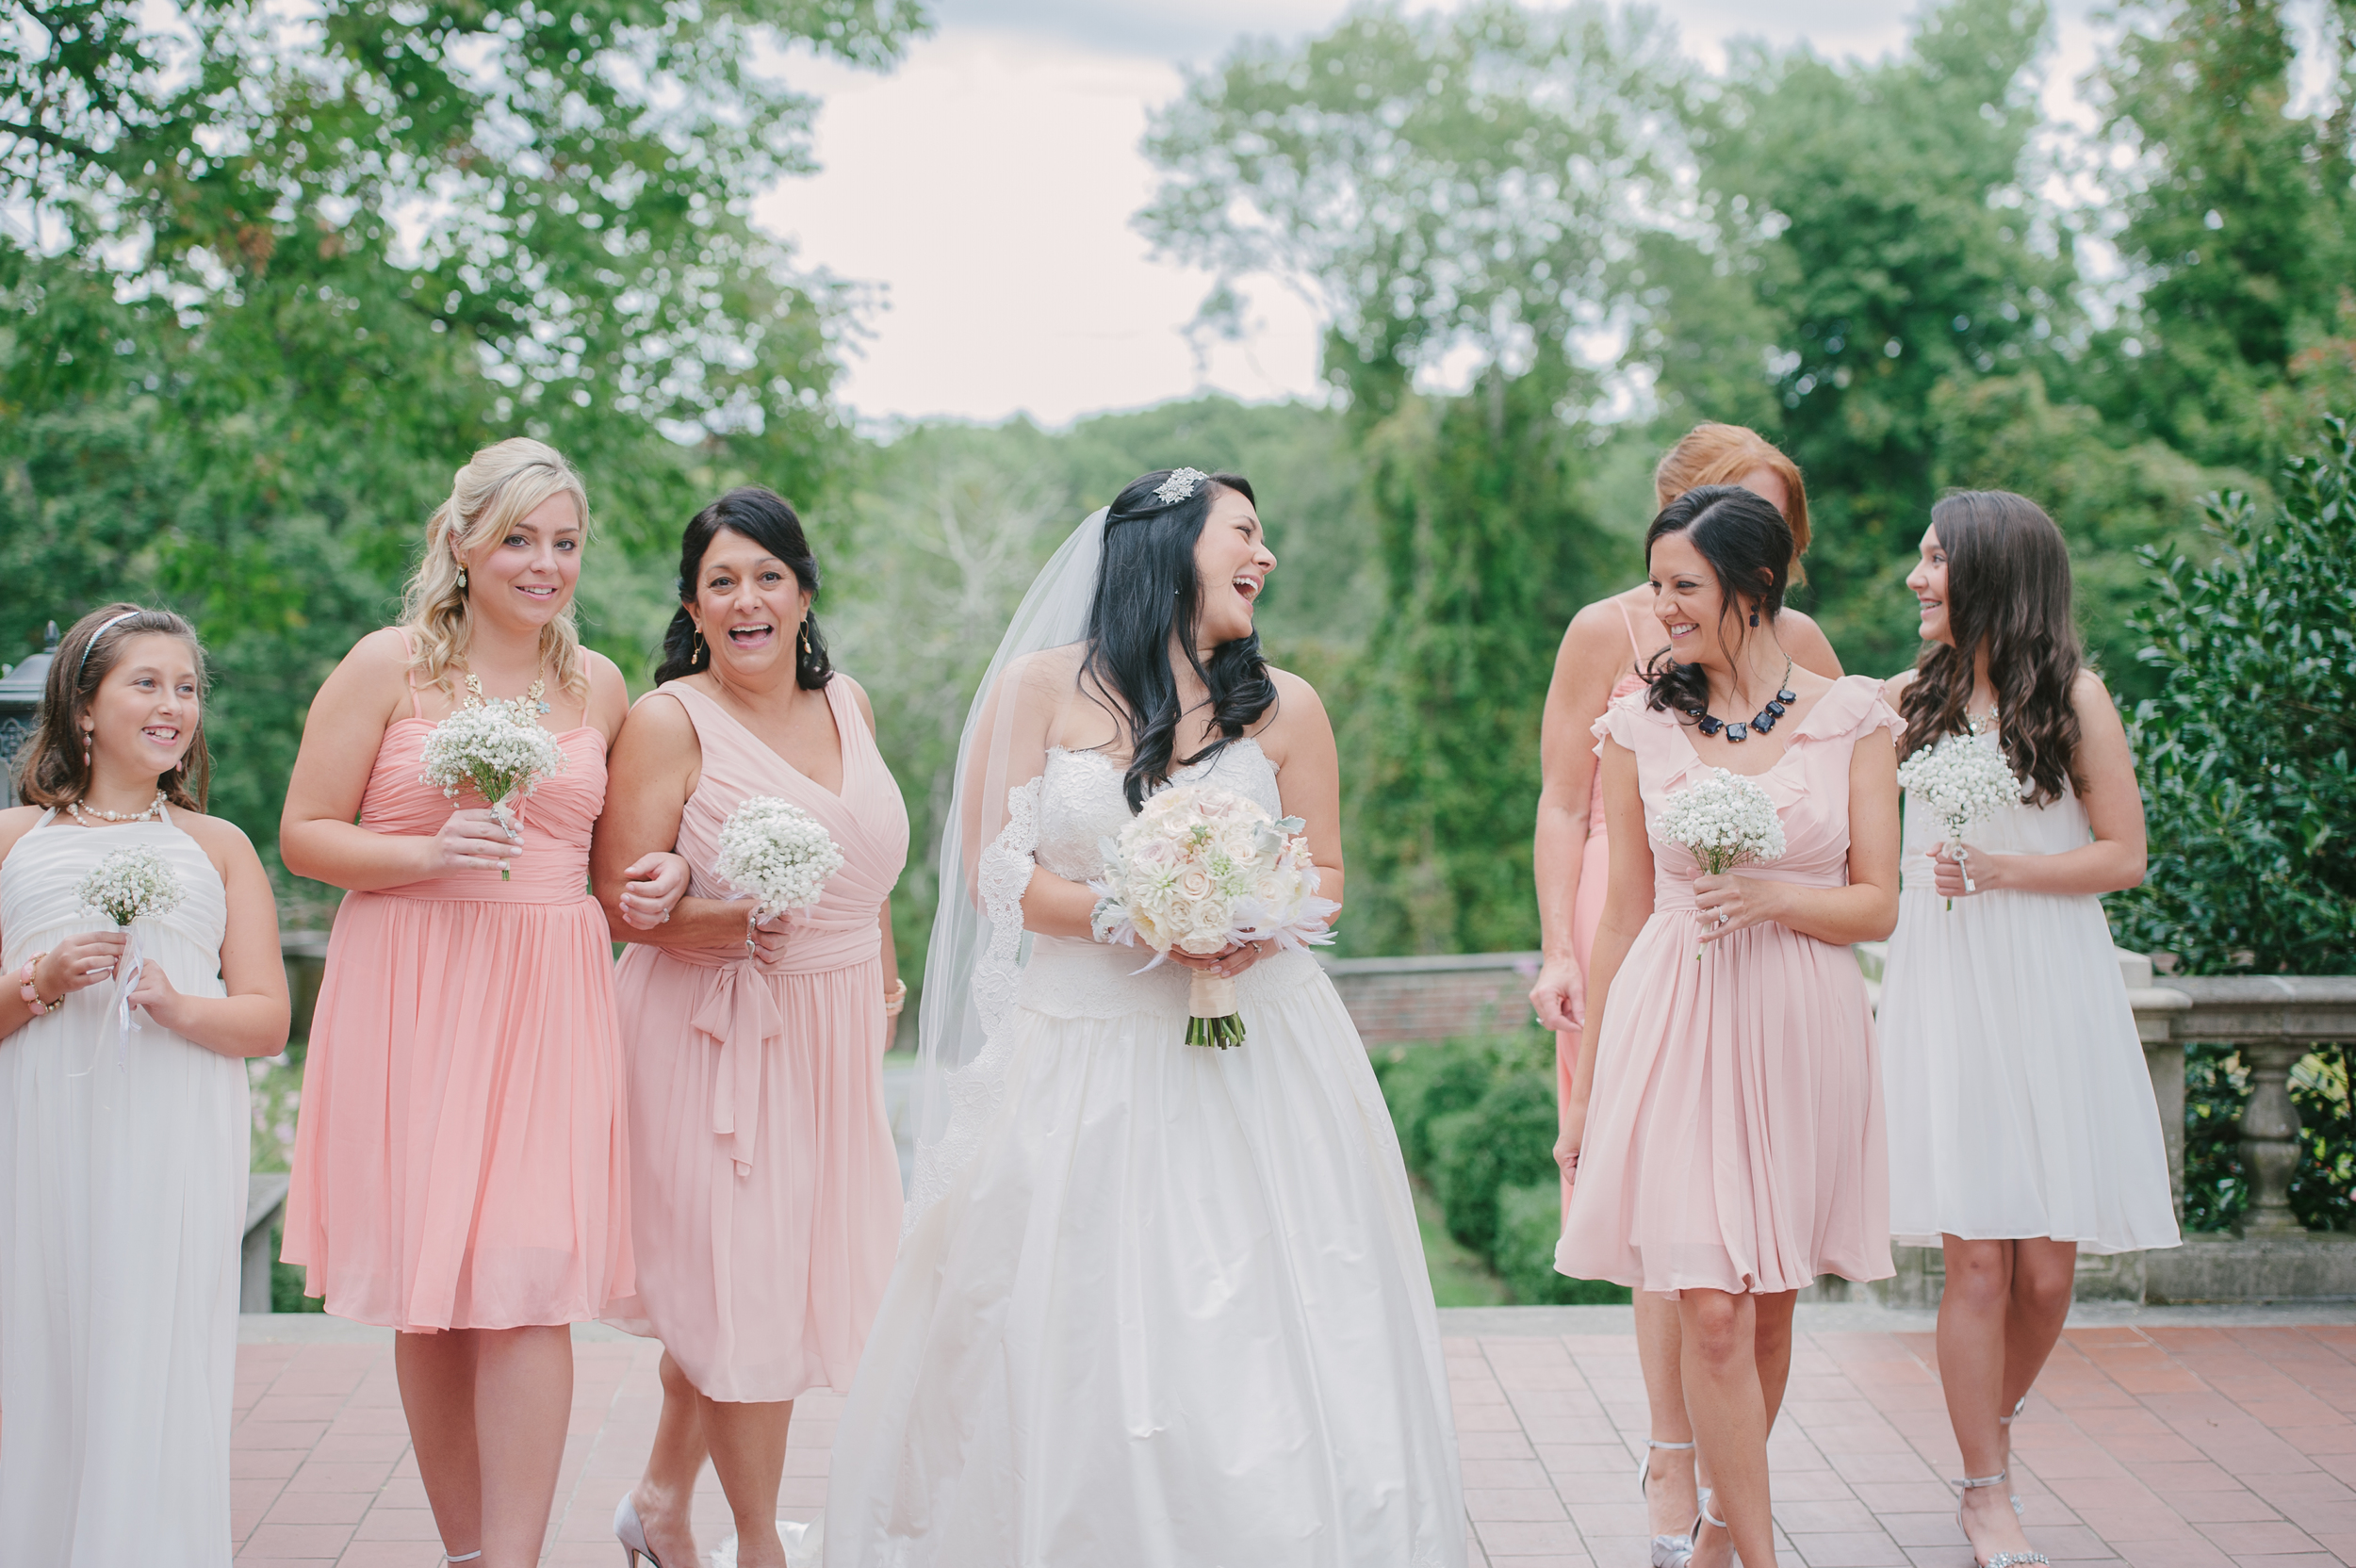 waveny_house_wedding_New_canaan_CT_Amy_Champagne_Events396.jpg